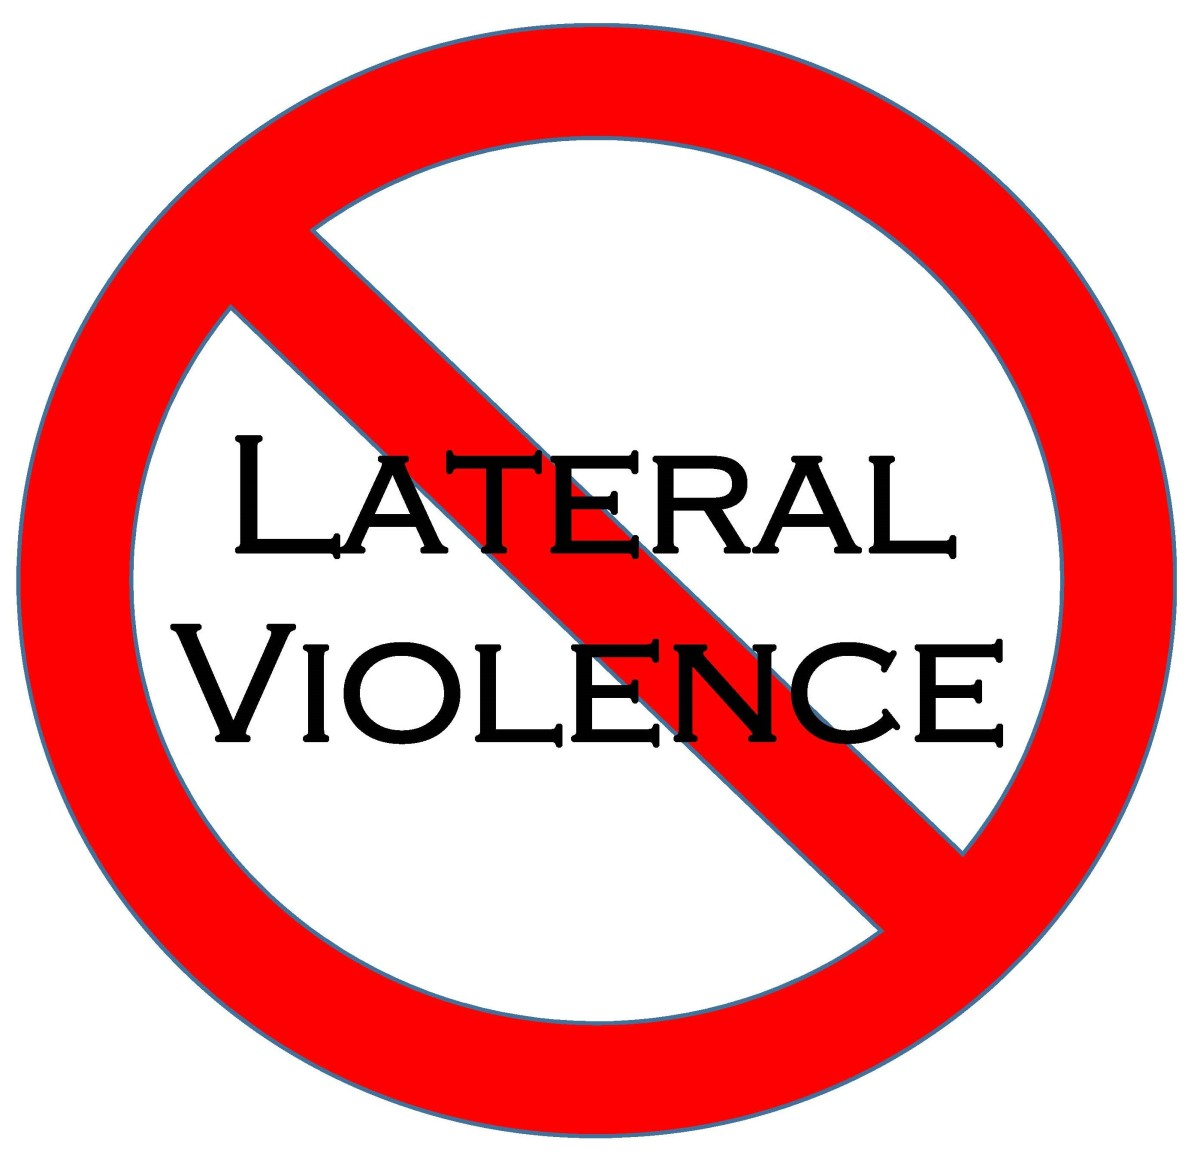 Coalition, Not LateralViolence